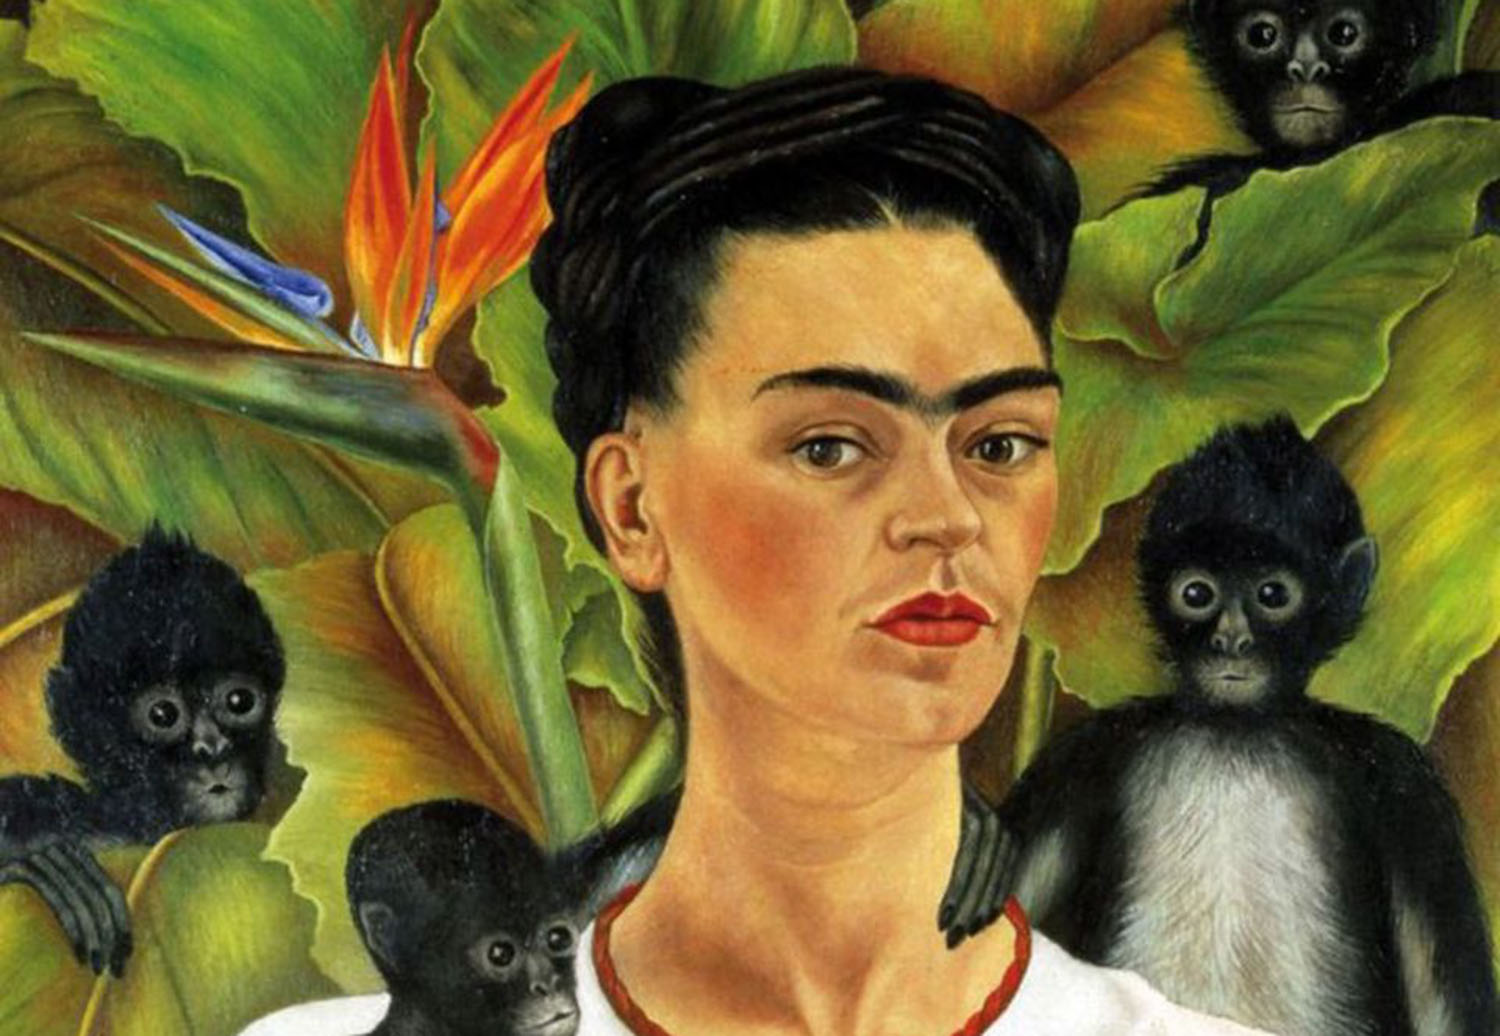 Self-portrait with Monkeys, Frida Kahlo 1943